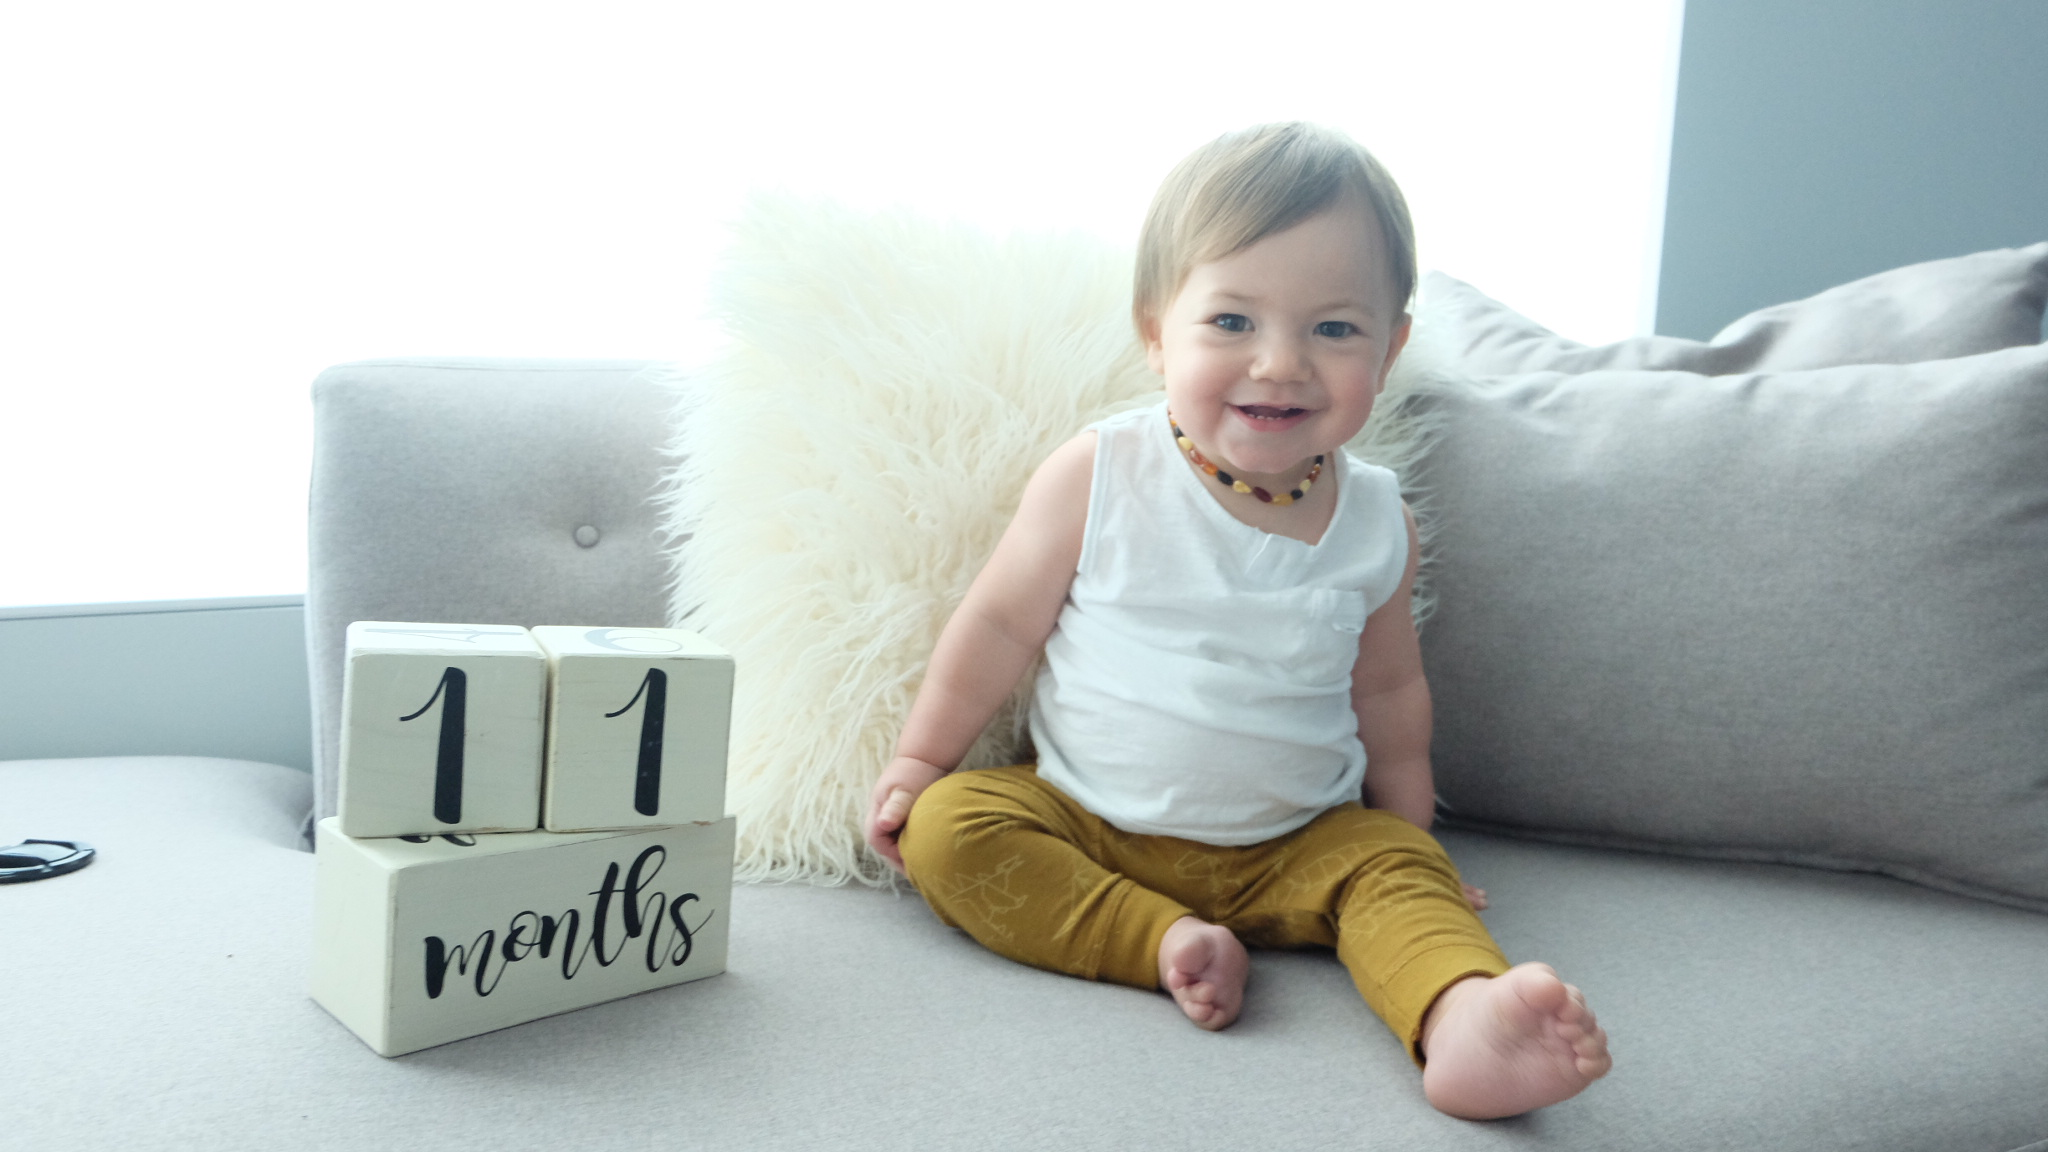 11-months-old-image